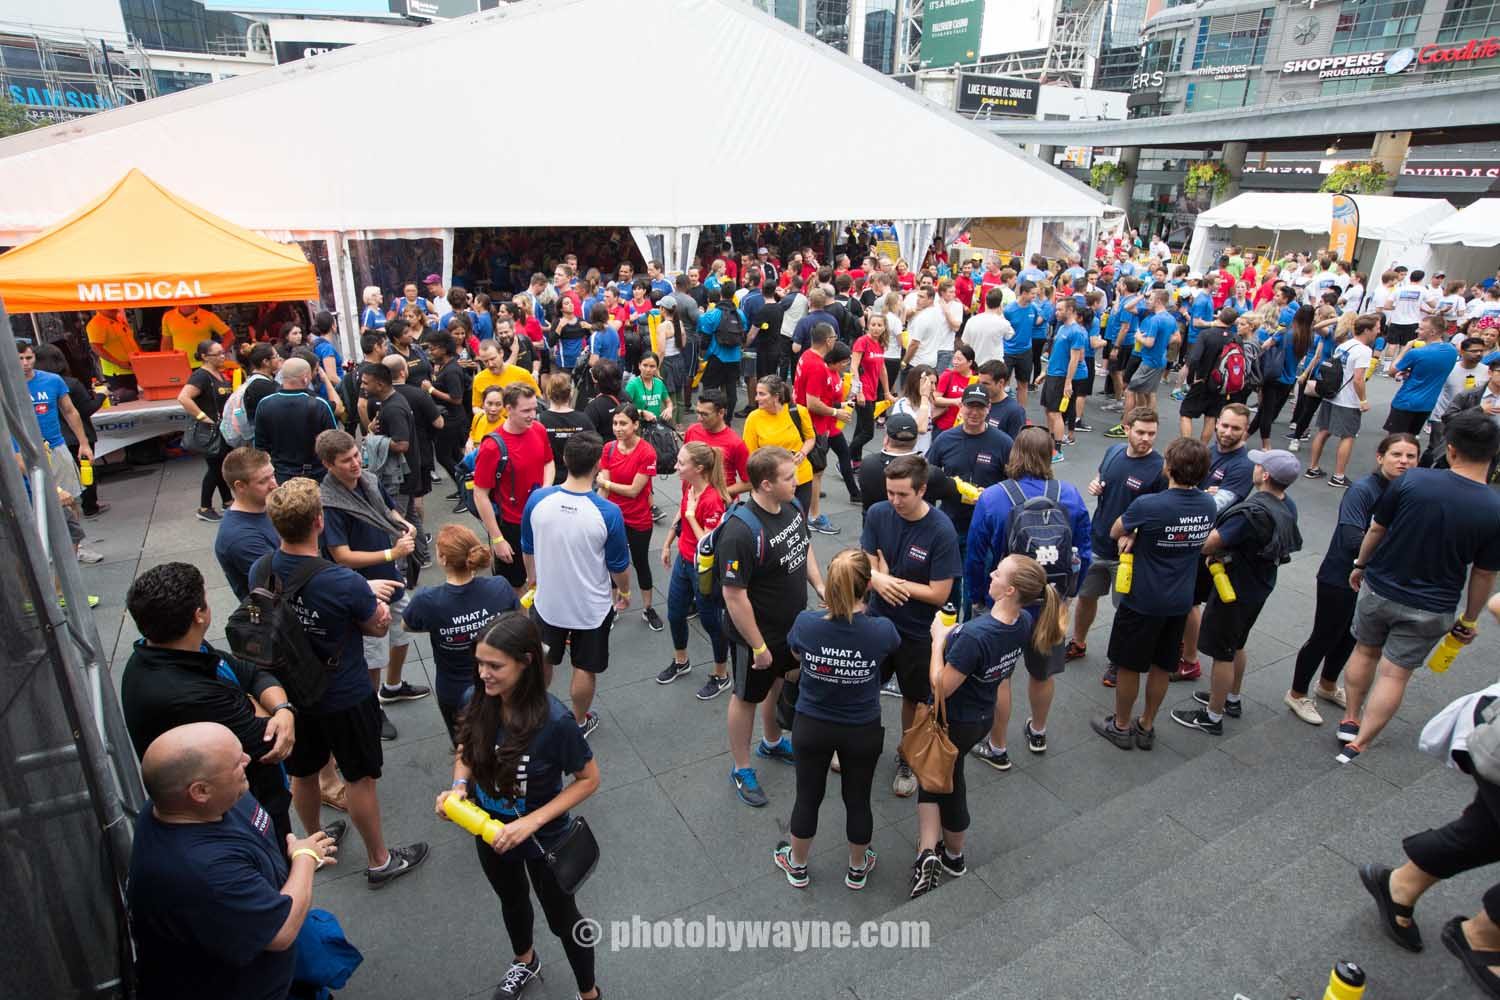 22-JDRF-Toronto-charity-ride-people-lineup-outside.jpg